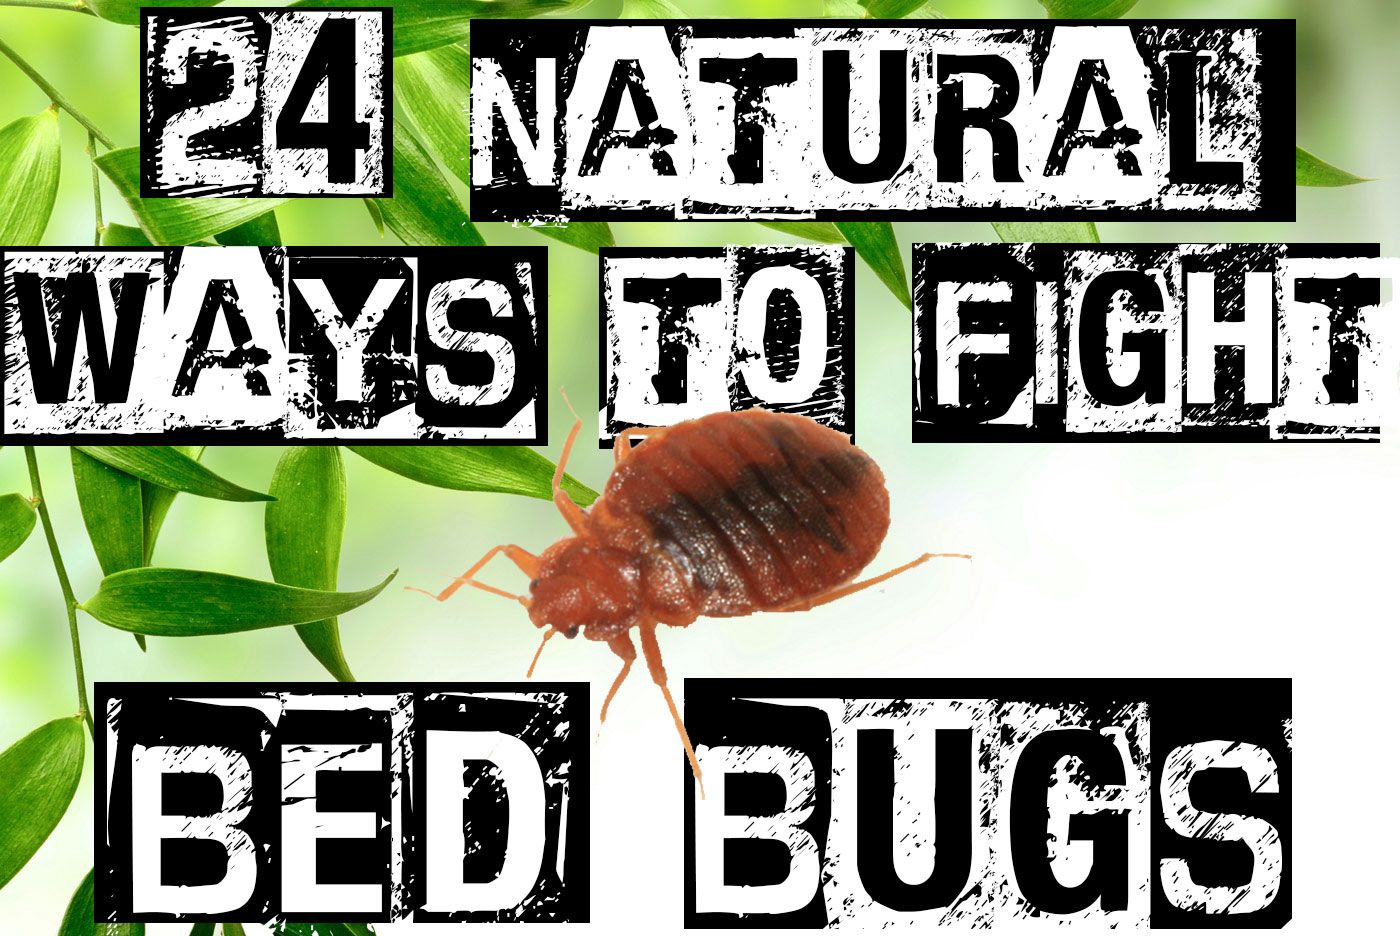 Getting Rid Of Bed Bugs A Comprehensive Guide To Getting Rid Of Bed Bugs Without